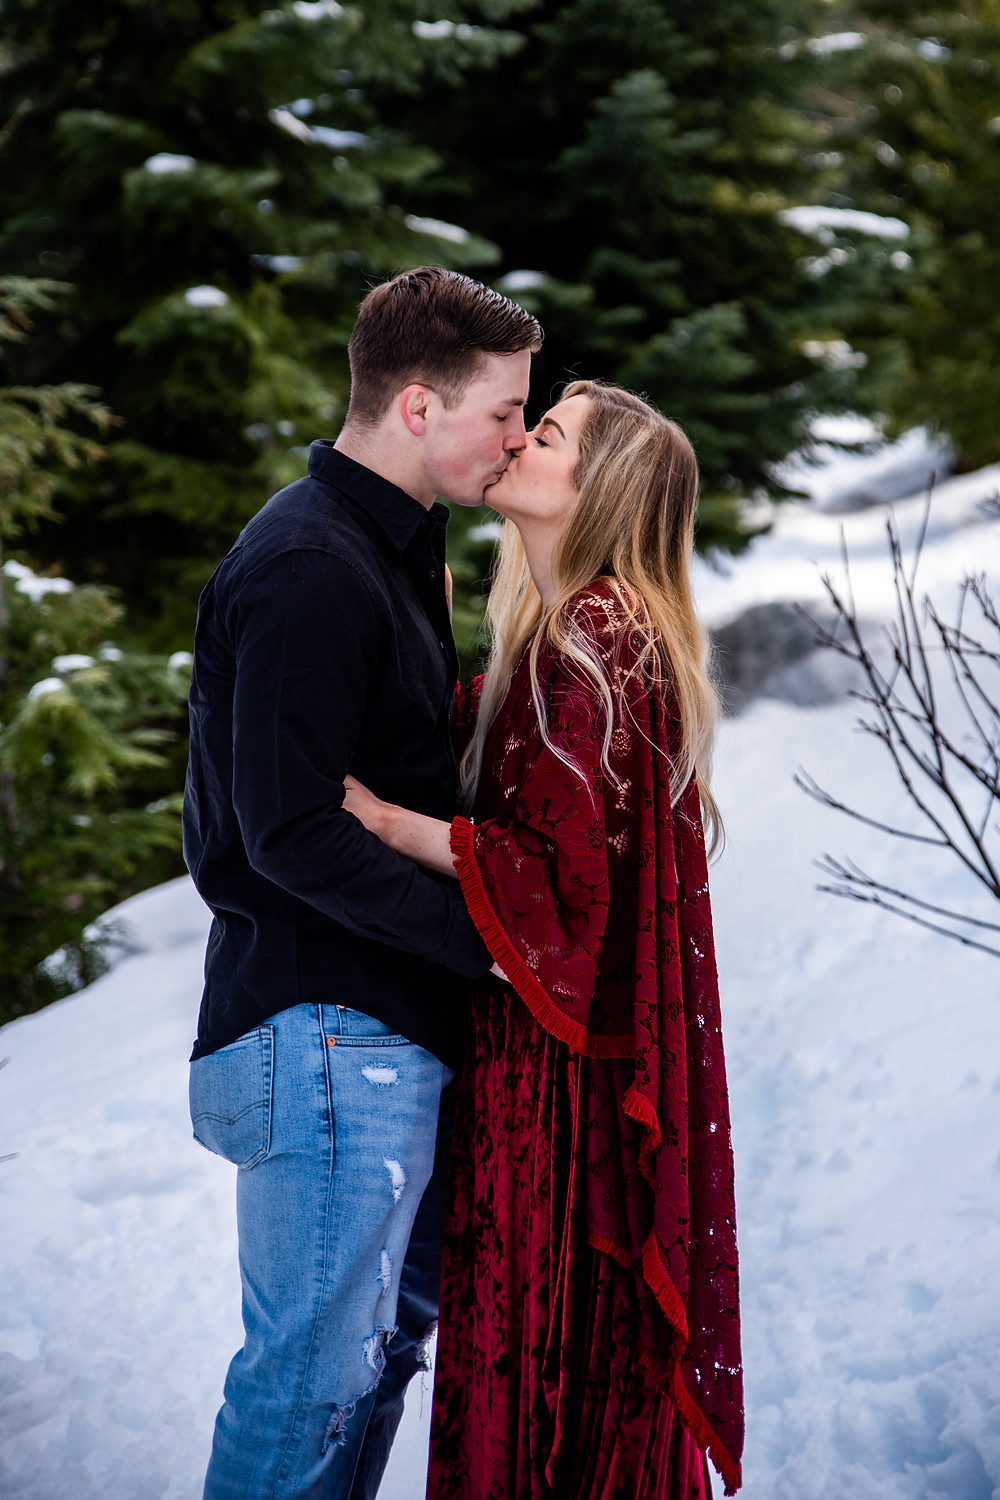 A couple kissing on their elopement day, the bride is wearing a bright red gown that contrasts beautifully against the snowy background